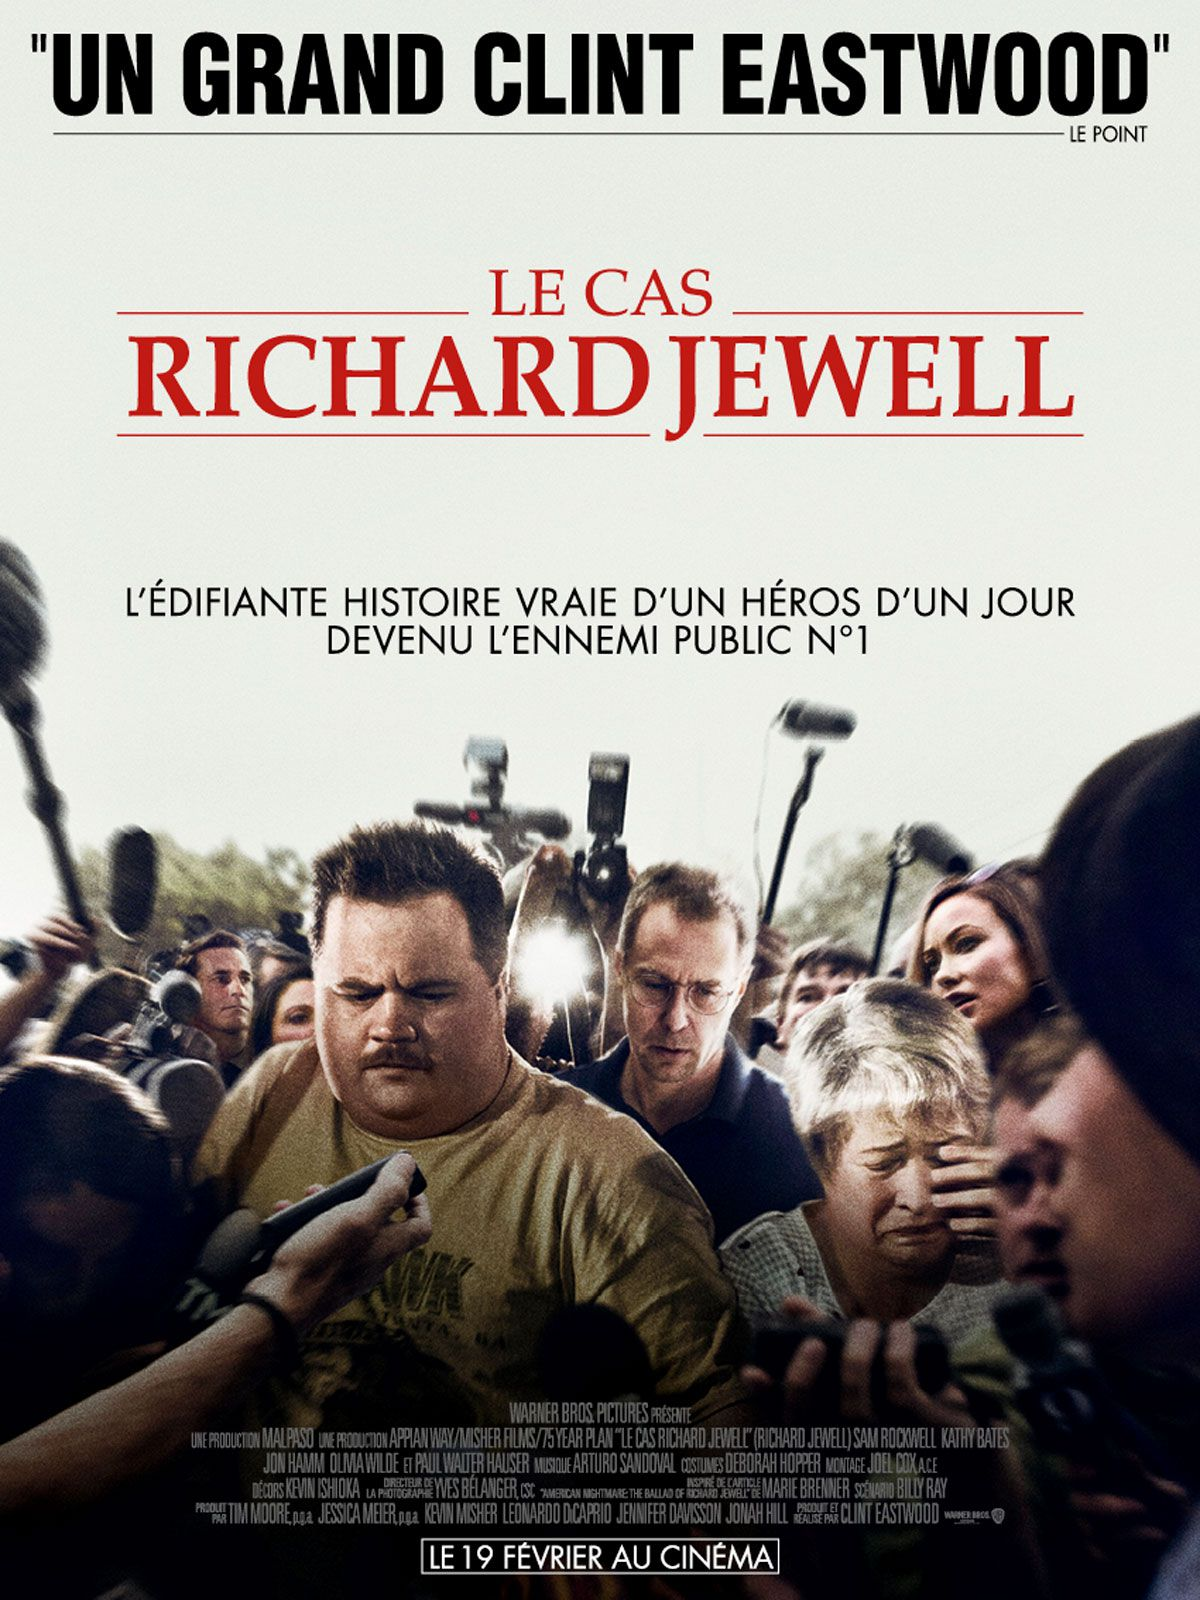 Le Cas Richard Jewell - Film (2020) streaming VF gratuit complet